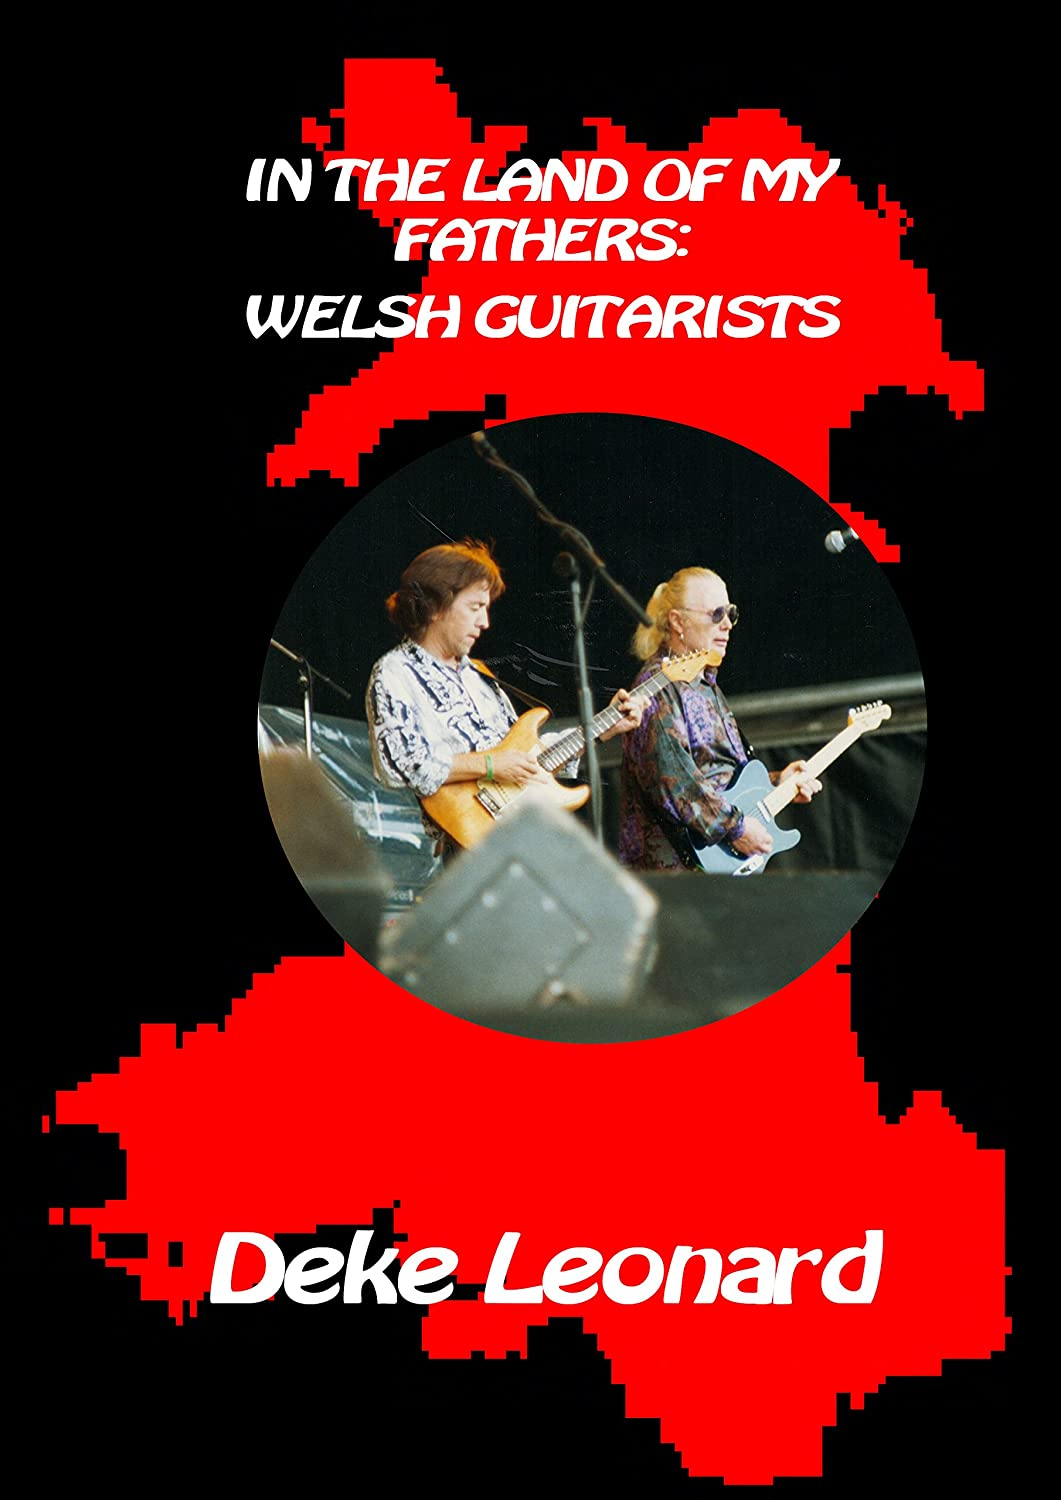 Land Of My Fathers: Welsh Guitarists by Deke Leonard